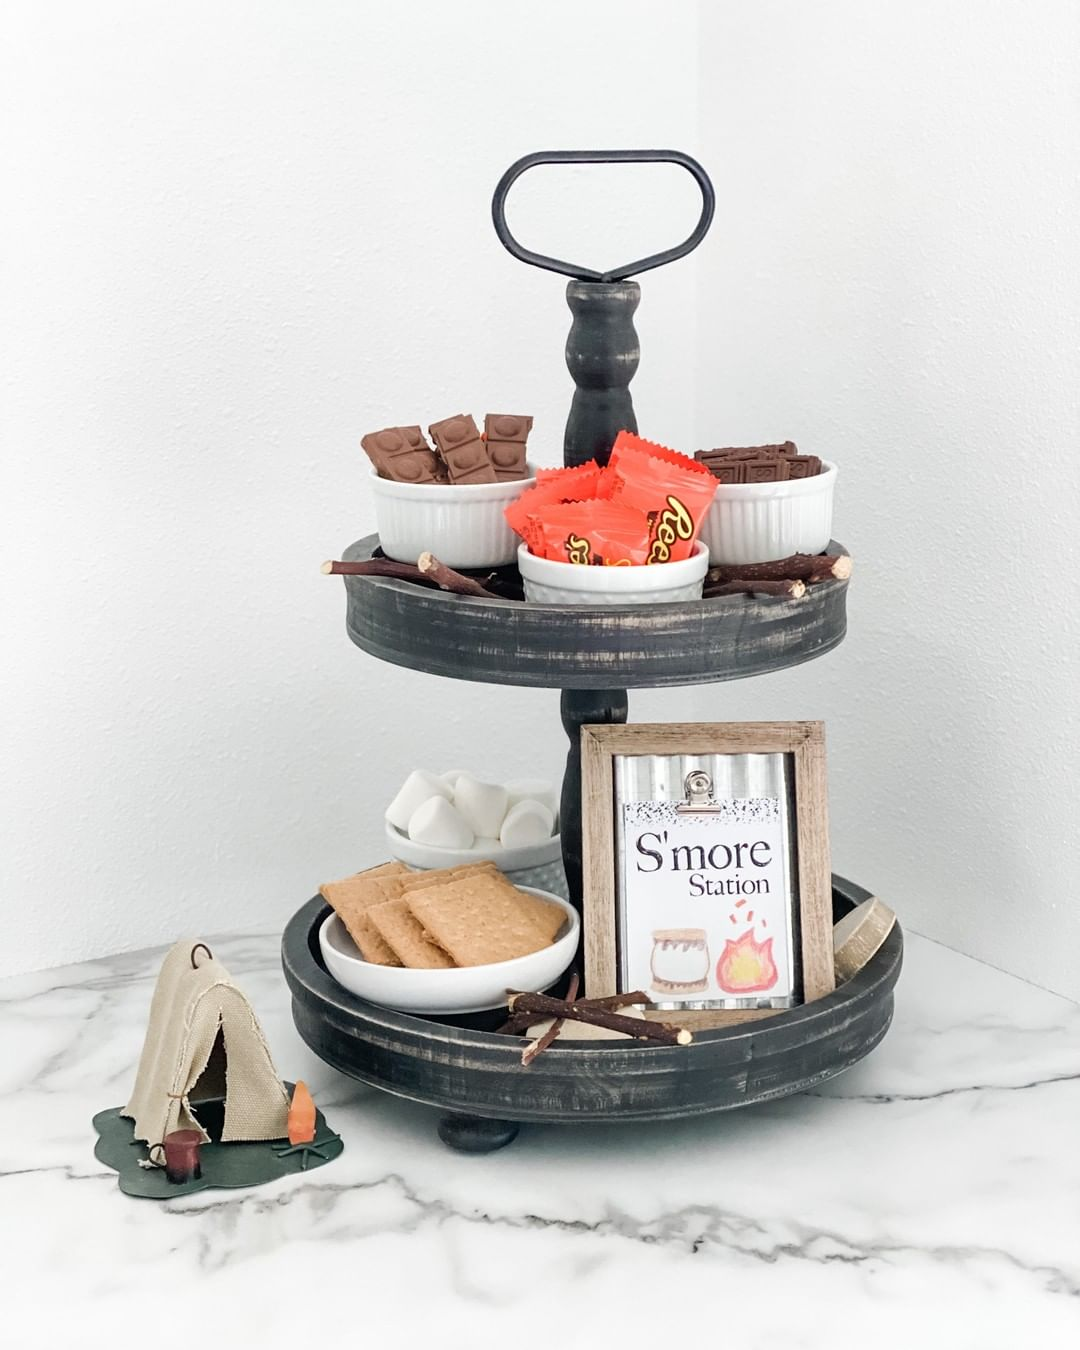 Candy and Smores